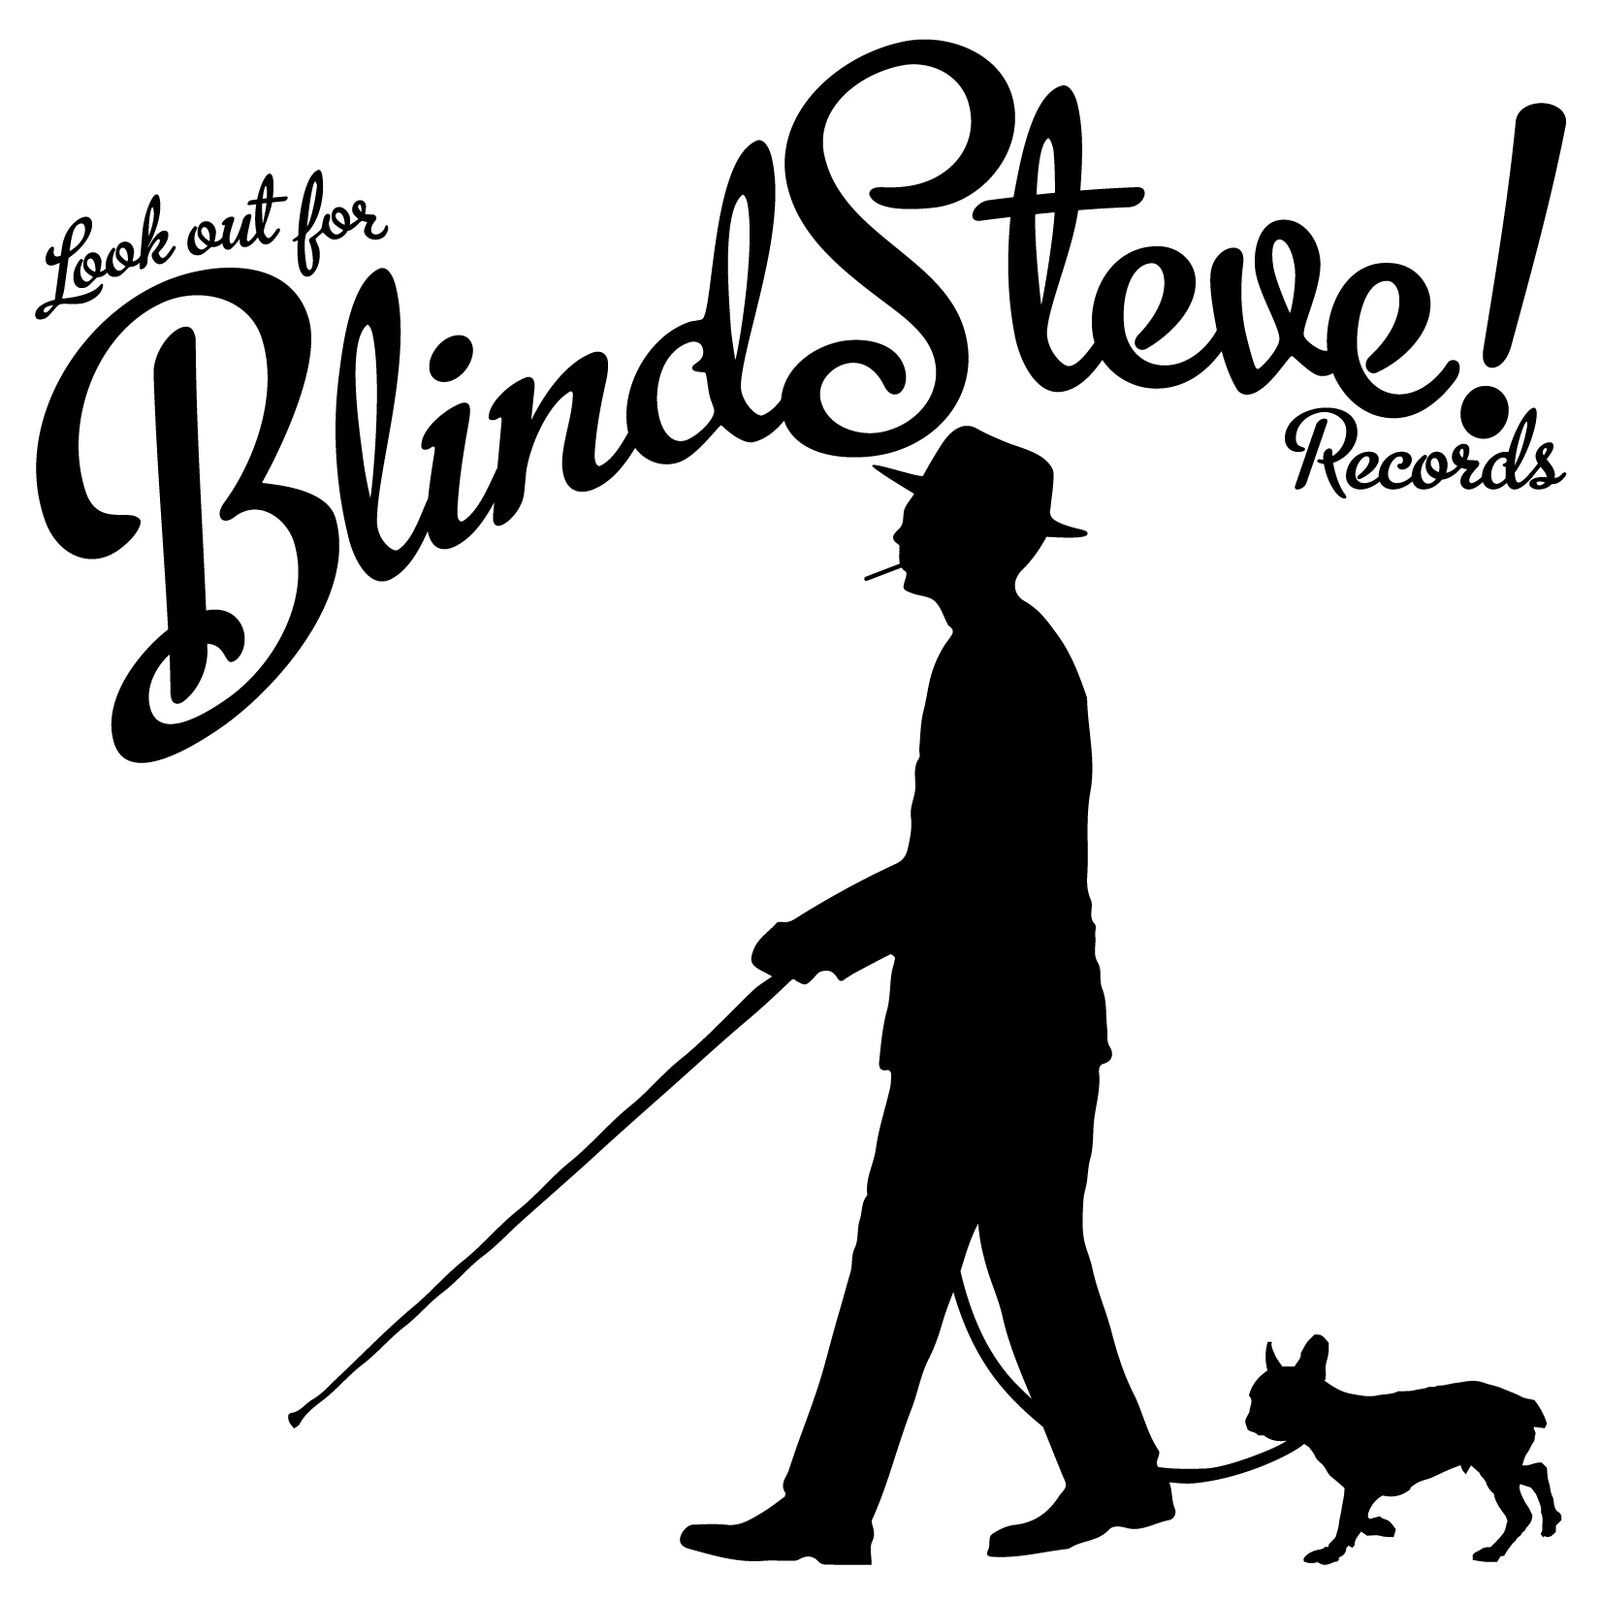 Blind Steve Records